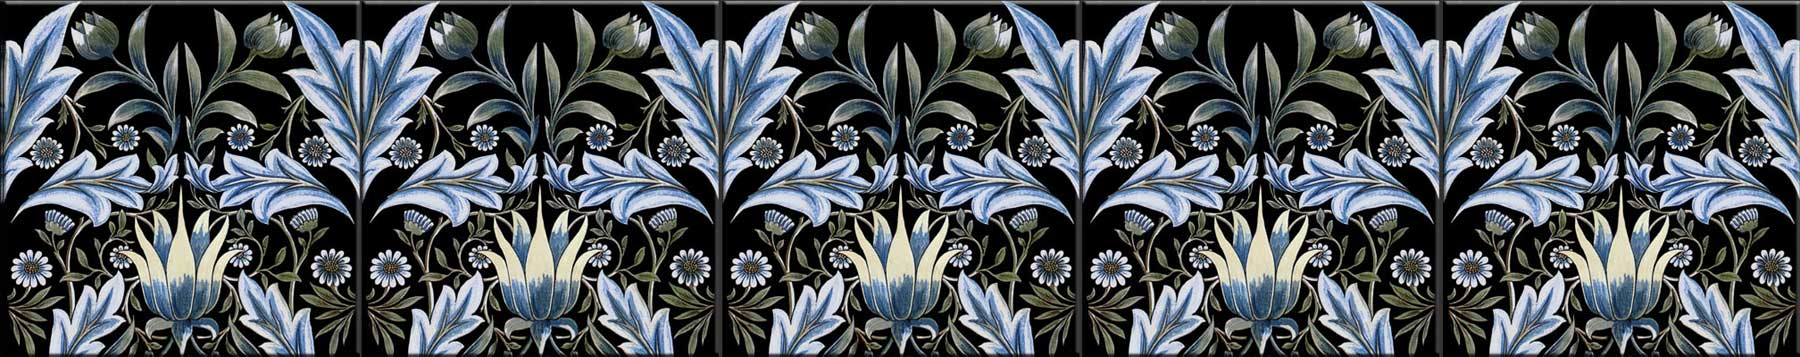 William Morris, Membland Tiles accent tile